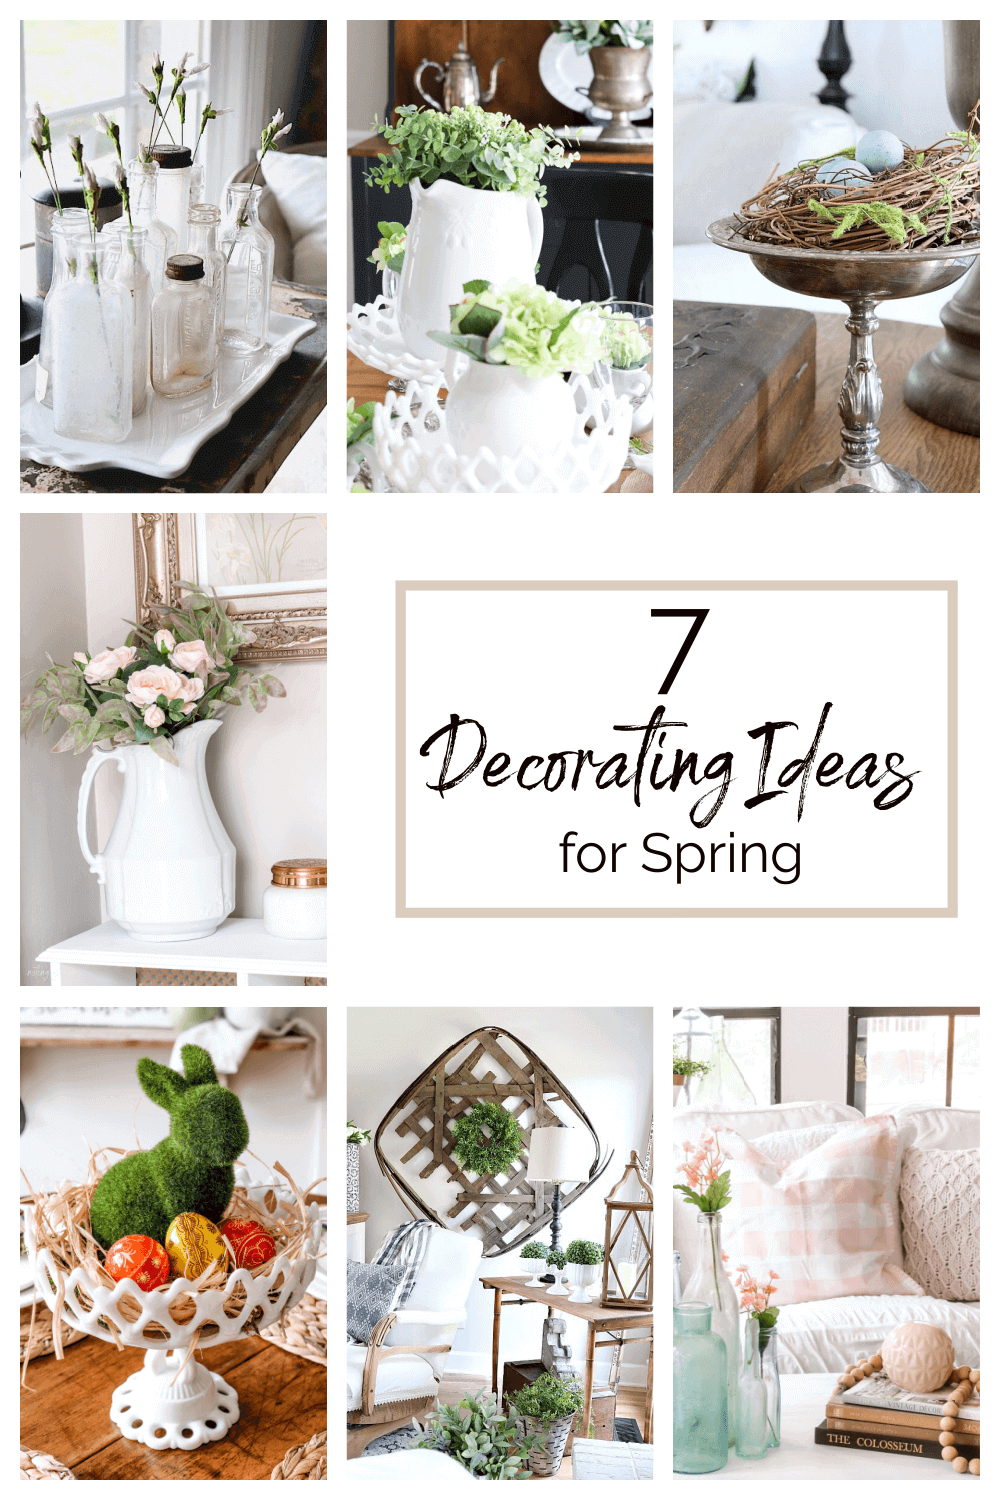 Welcome Home Saturday: 7 Decorating ideas for Spring